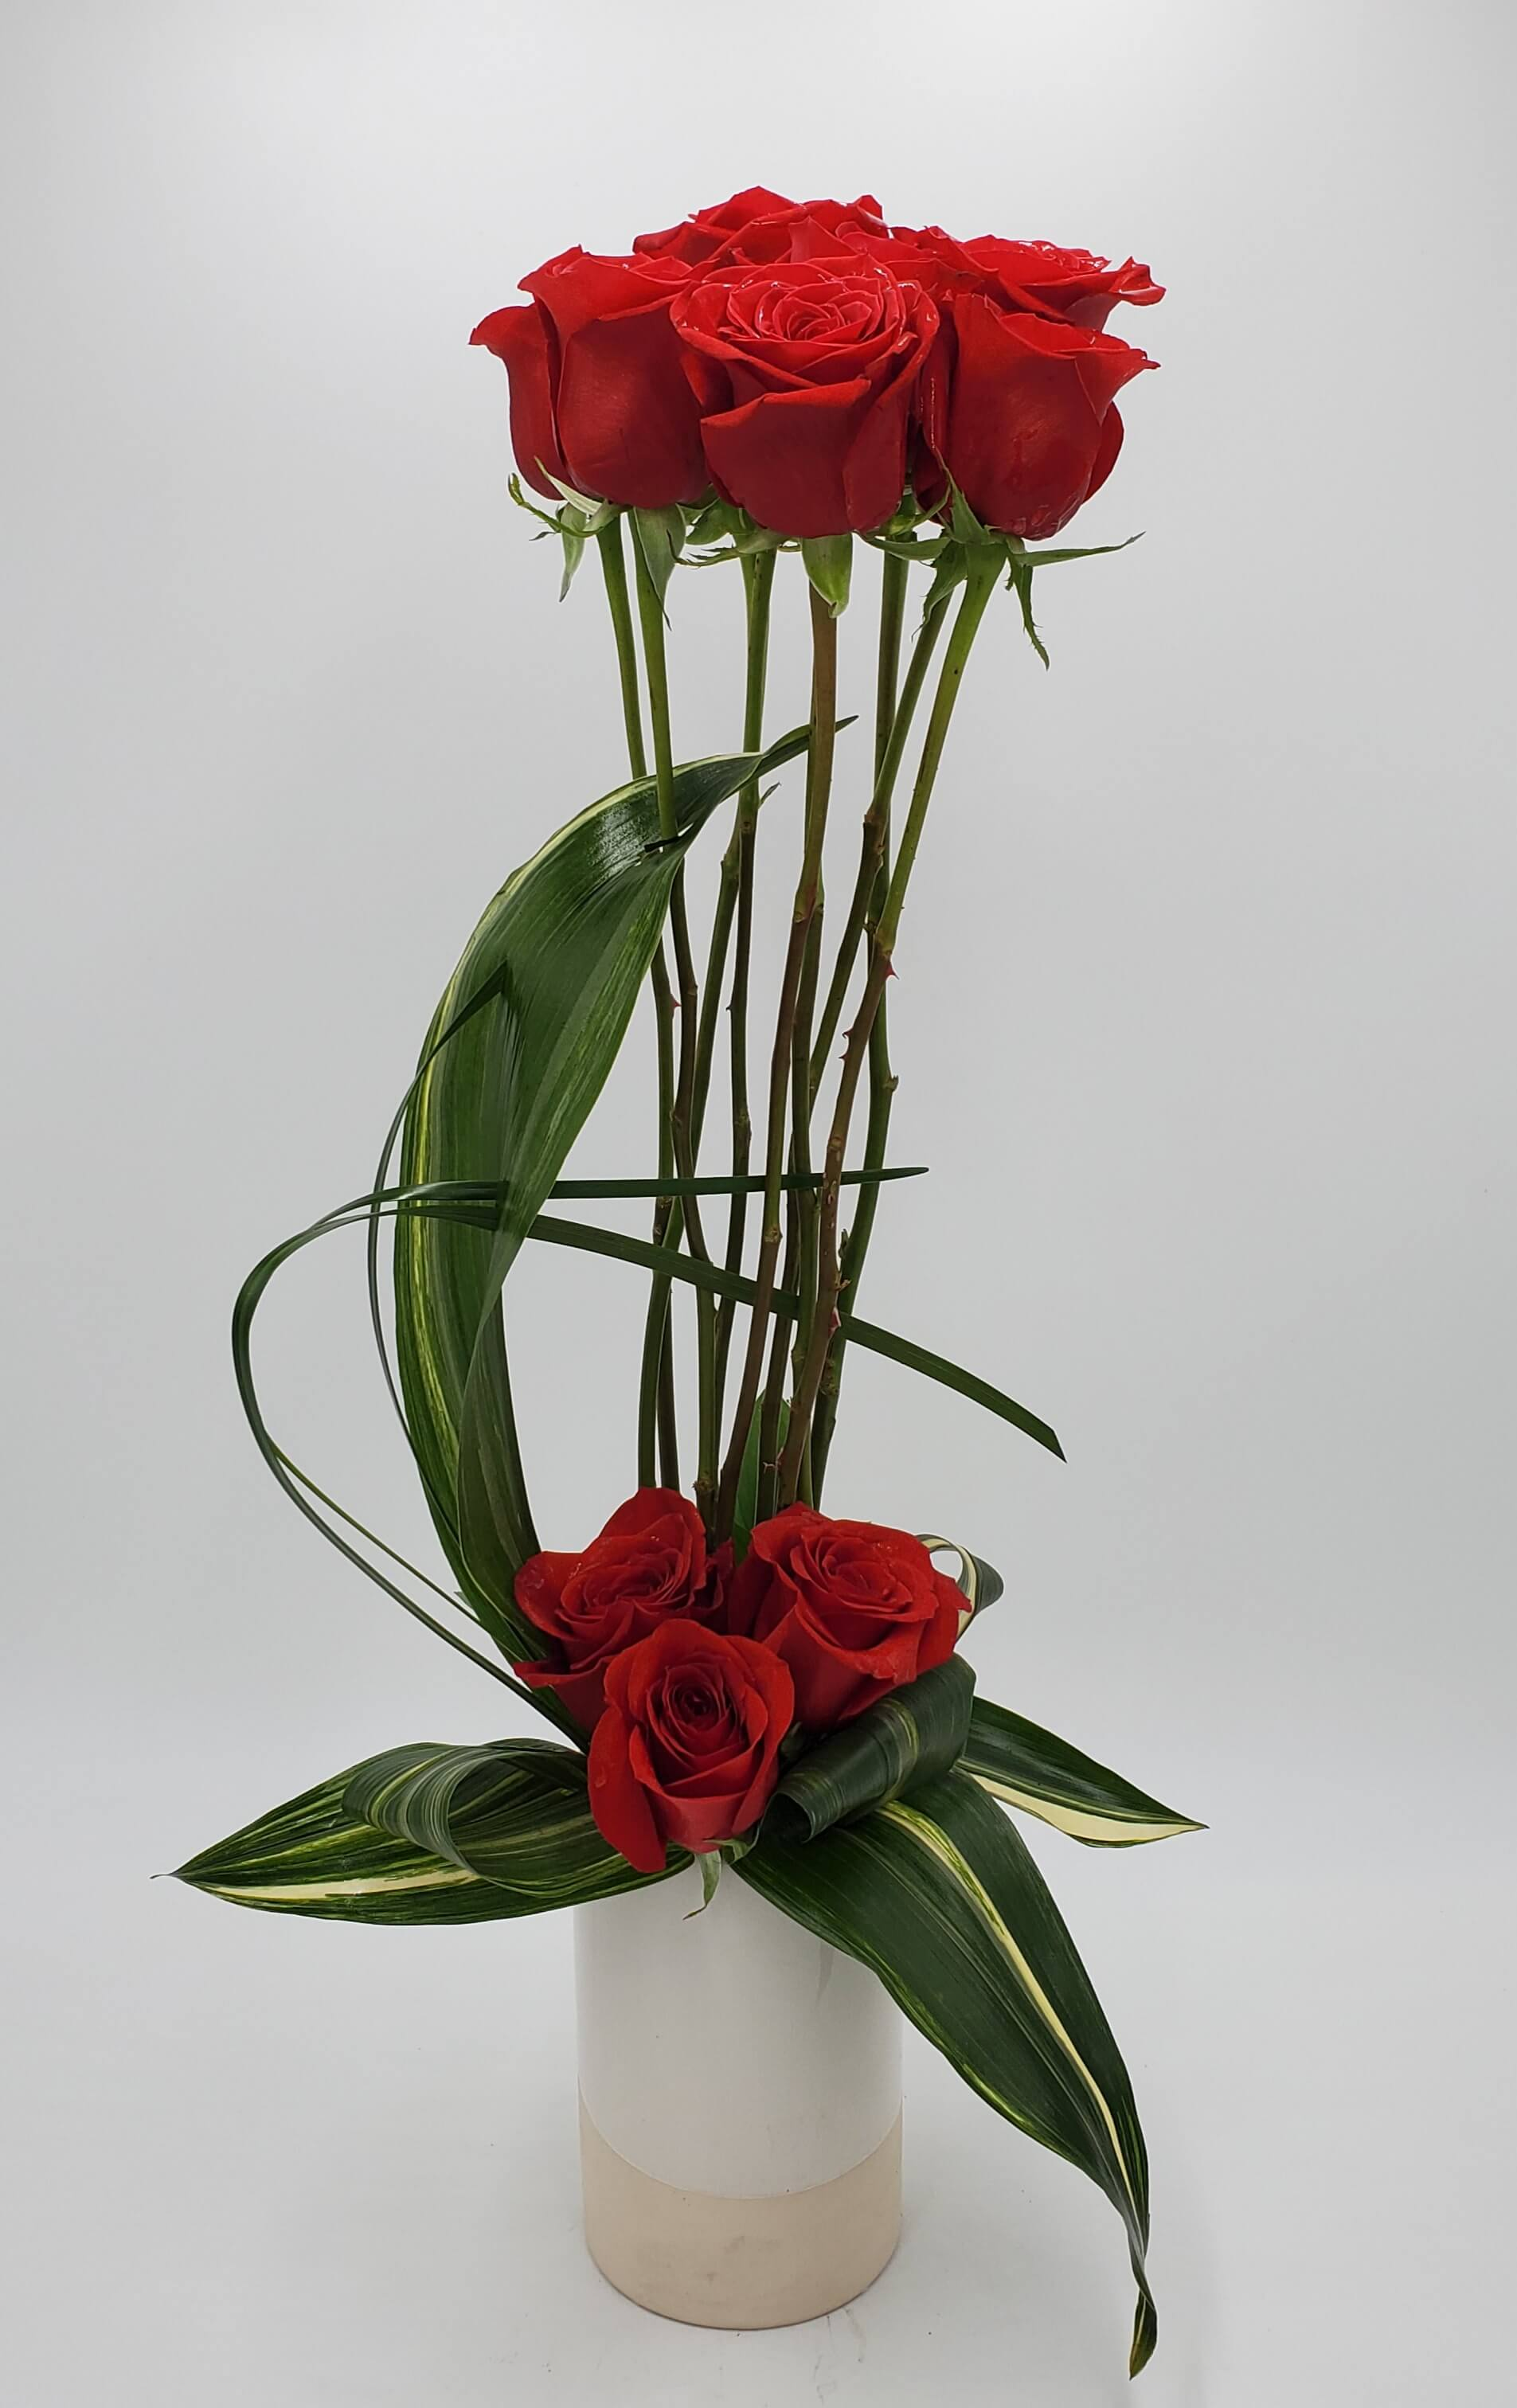 Modern Red rose design